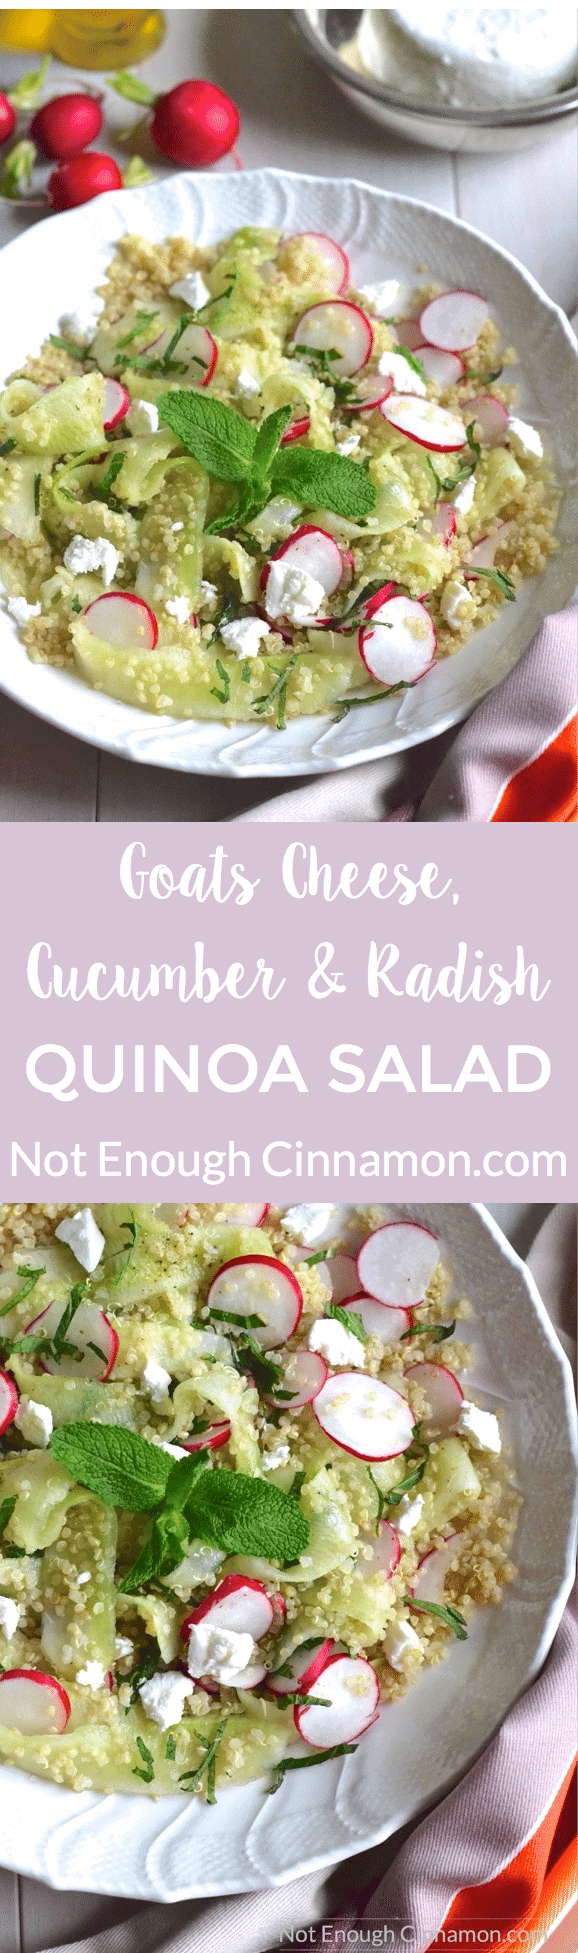 Quinoa Salad with Goats Cheese, Cucumber and Radish. A light but filling healthy salad, naturally gluten free. Click to see the recipe #cleaneating | NotEnoughCinnamon.com